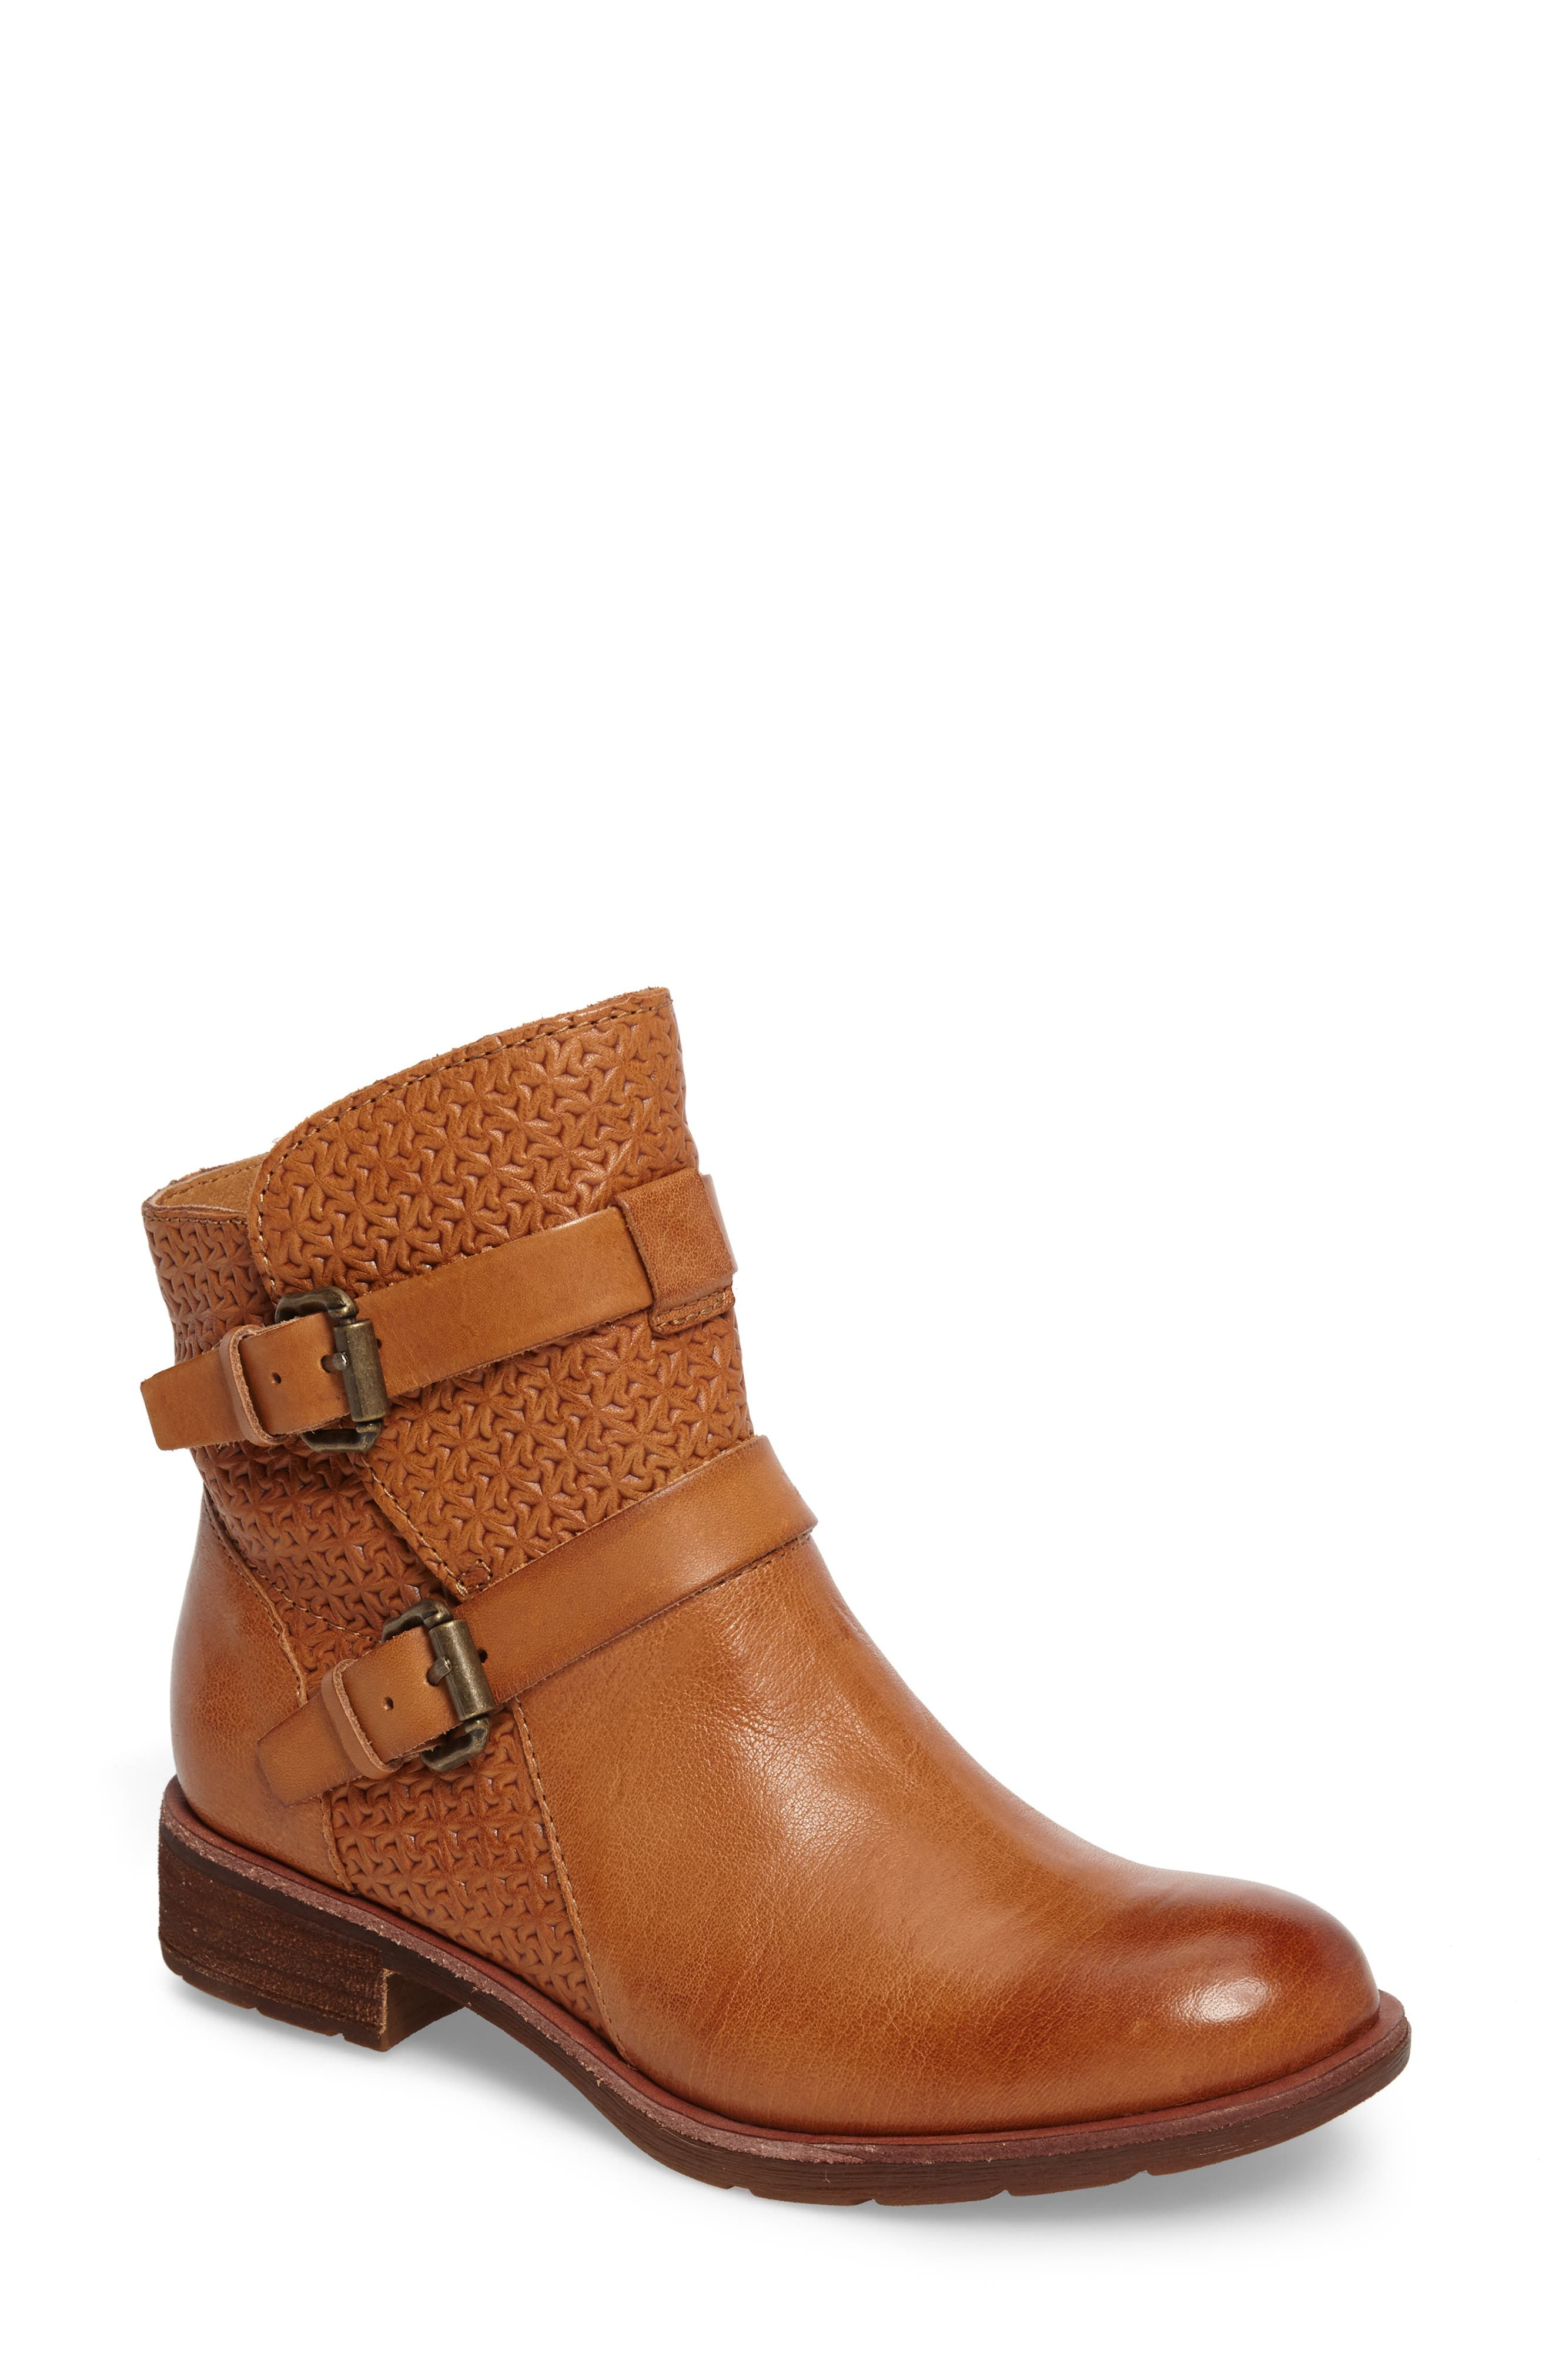 Baywood Buckle Boot,                             Main thumbnail 1, color,                             LUGGAGE LEATHER